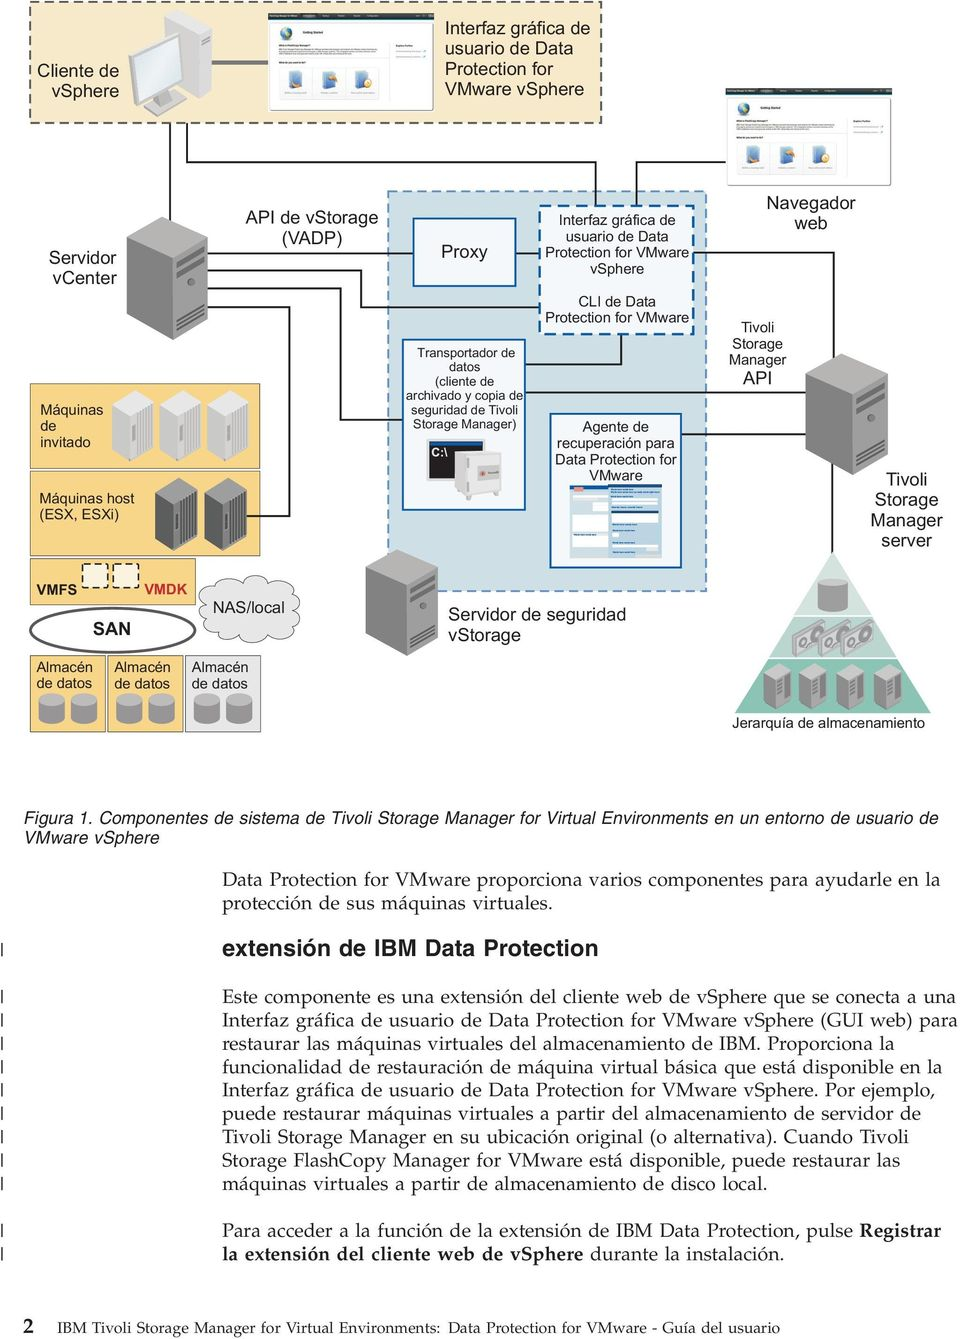 Protection for VMware Tioli Storage Manager API Naegador web Tioli Storage Manager serer VMFS SAN VMDK NAS/local Seridor de seguridad Storage Almacén de datos Almacén de datos Almacén de datos